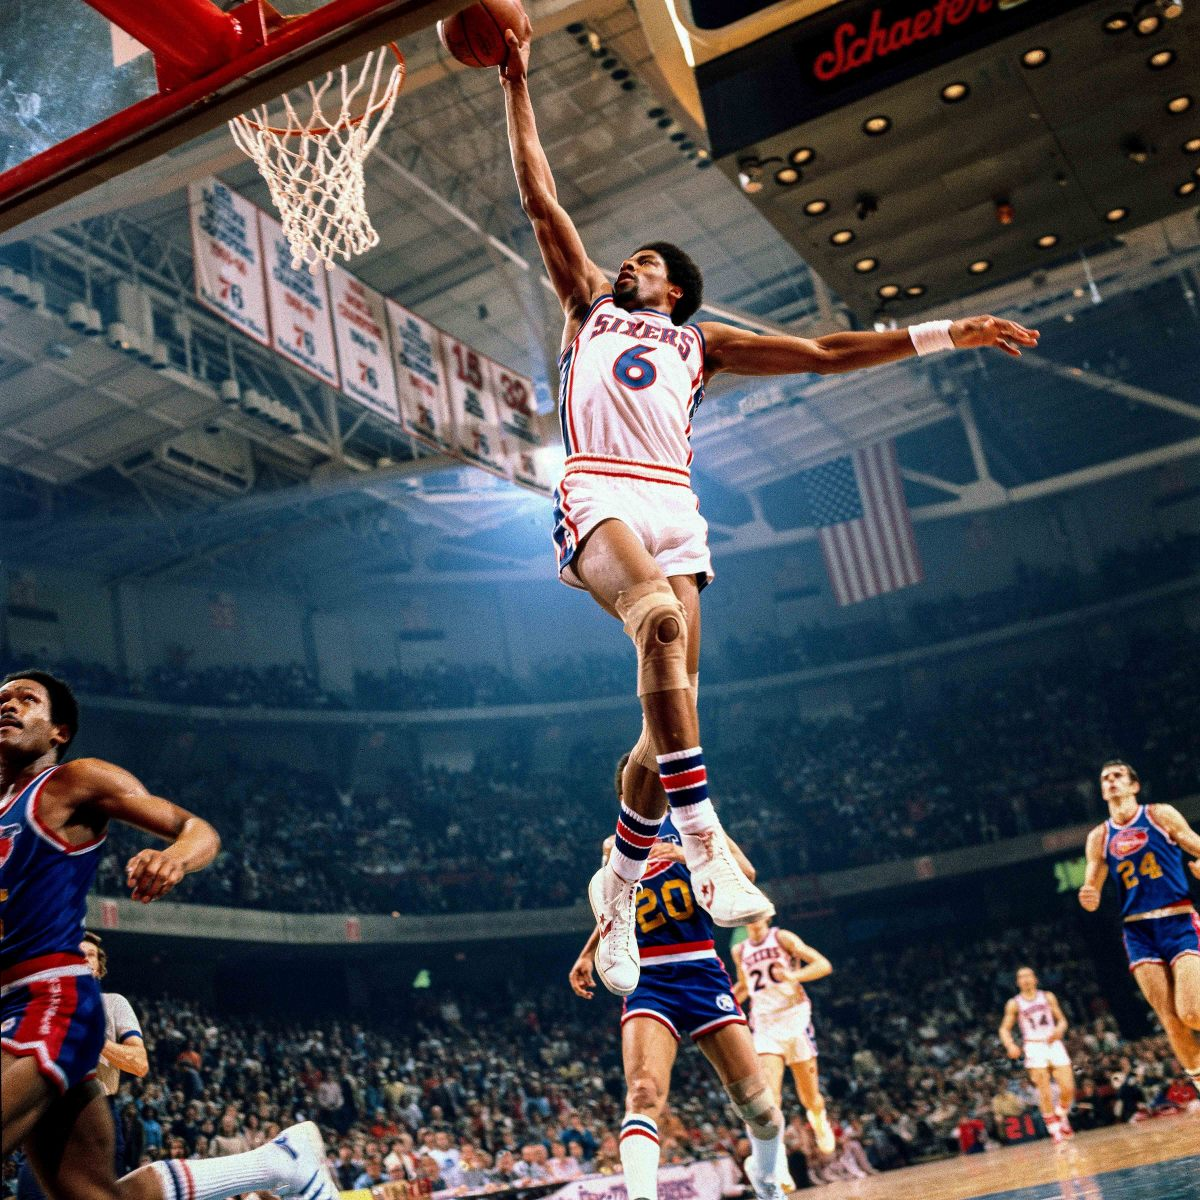 Nets fans were ticked off about the departure of Dr. J, a player they'd paid to see—so they sued.